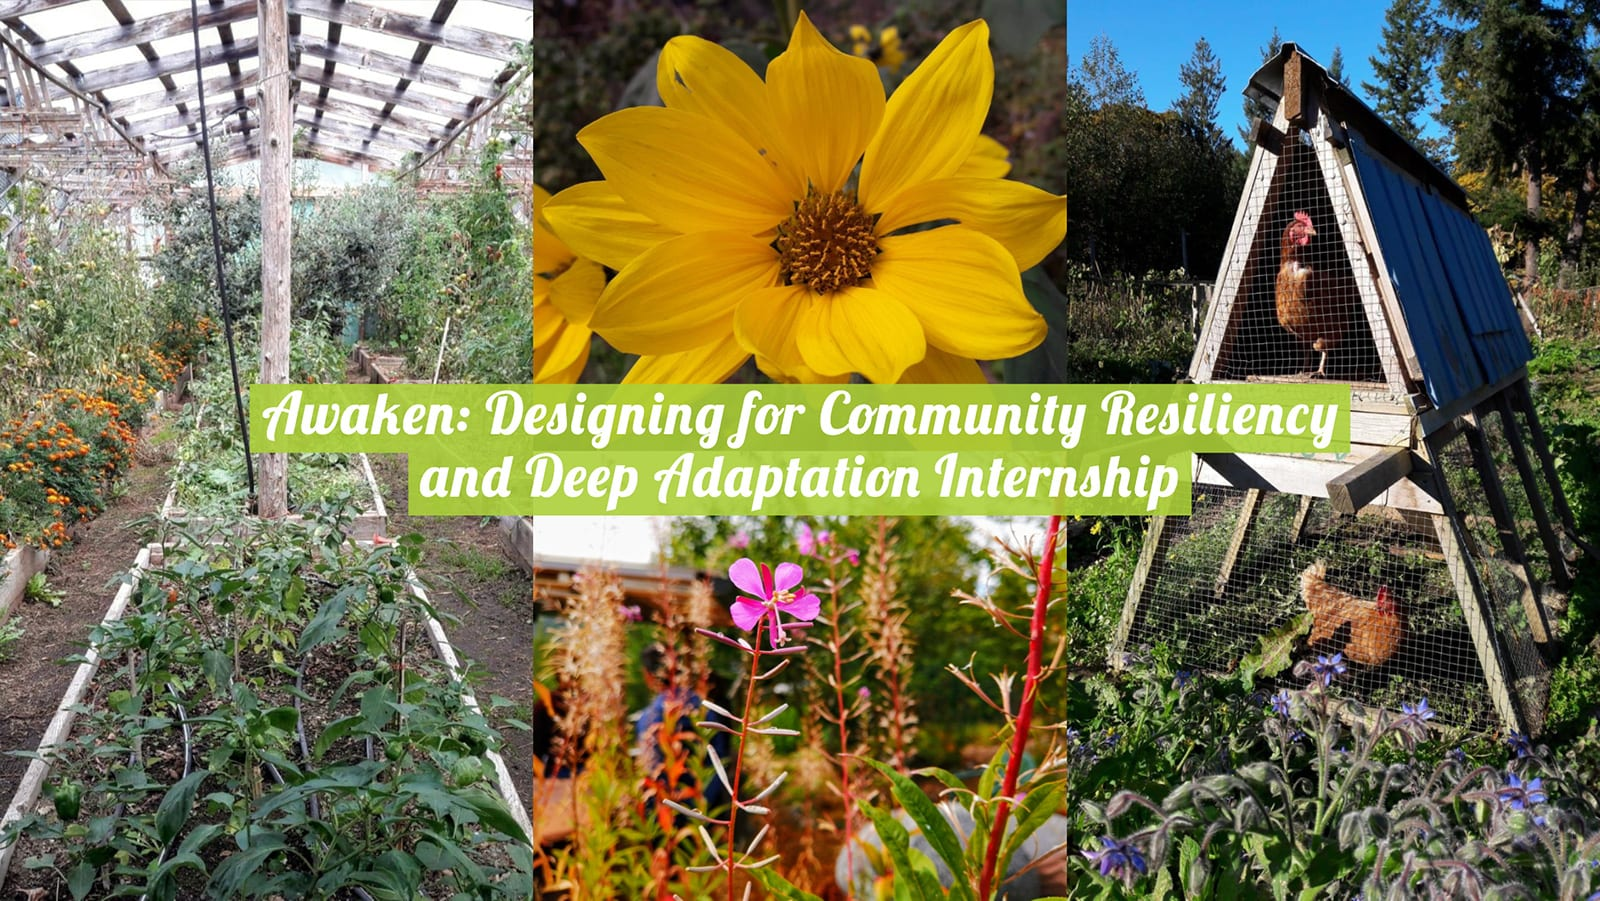 Awaken: Designing for Community Resiliency and Deep Adaptation Internship Introduction